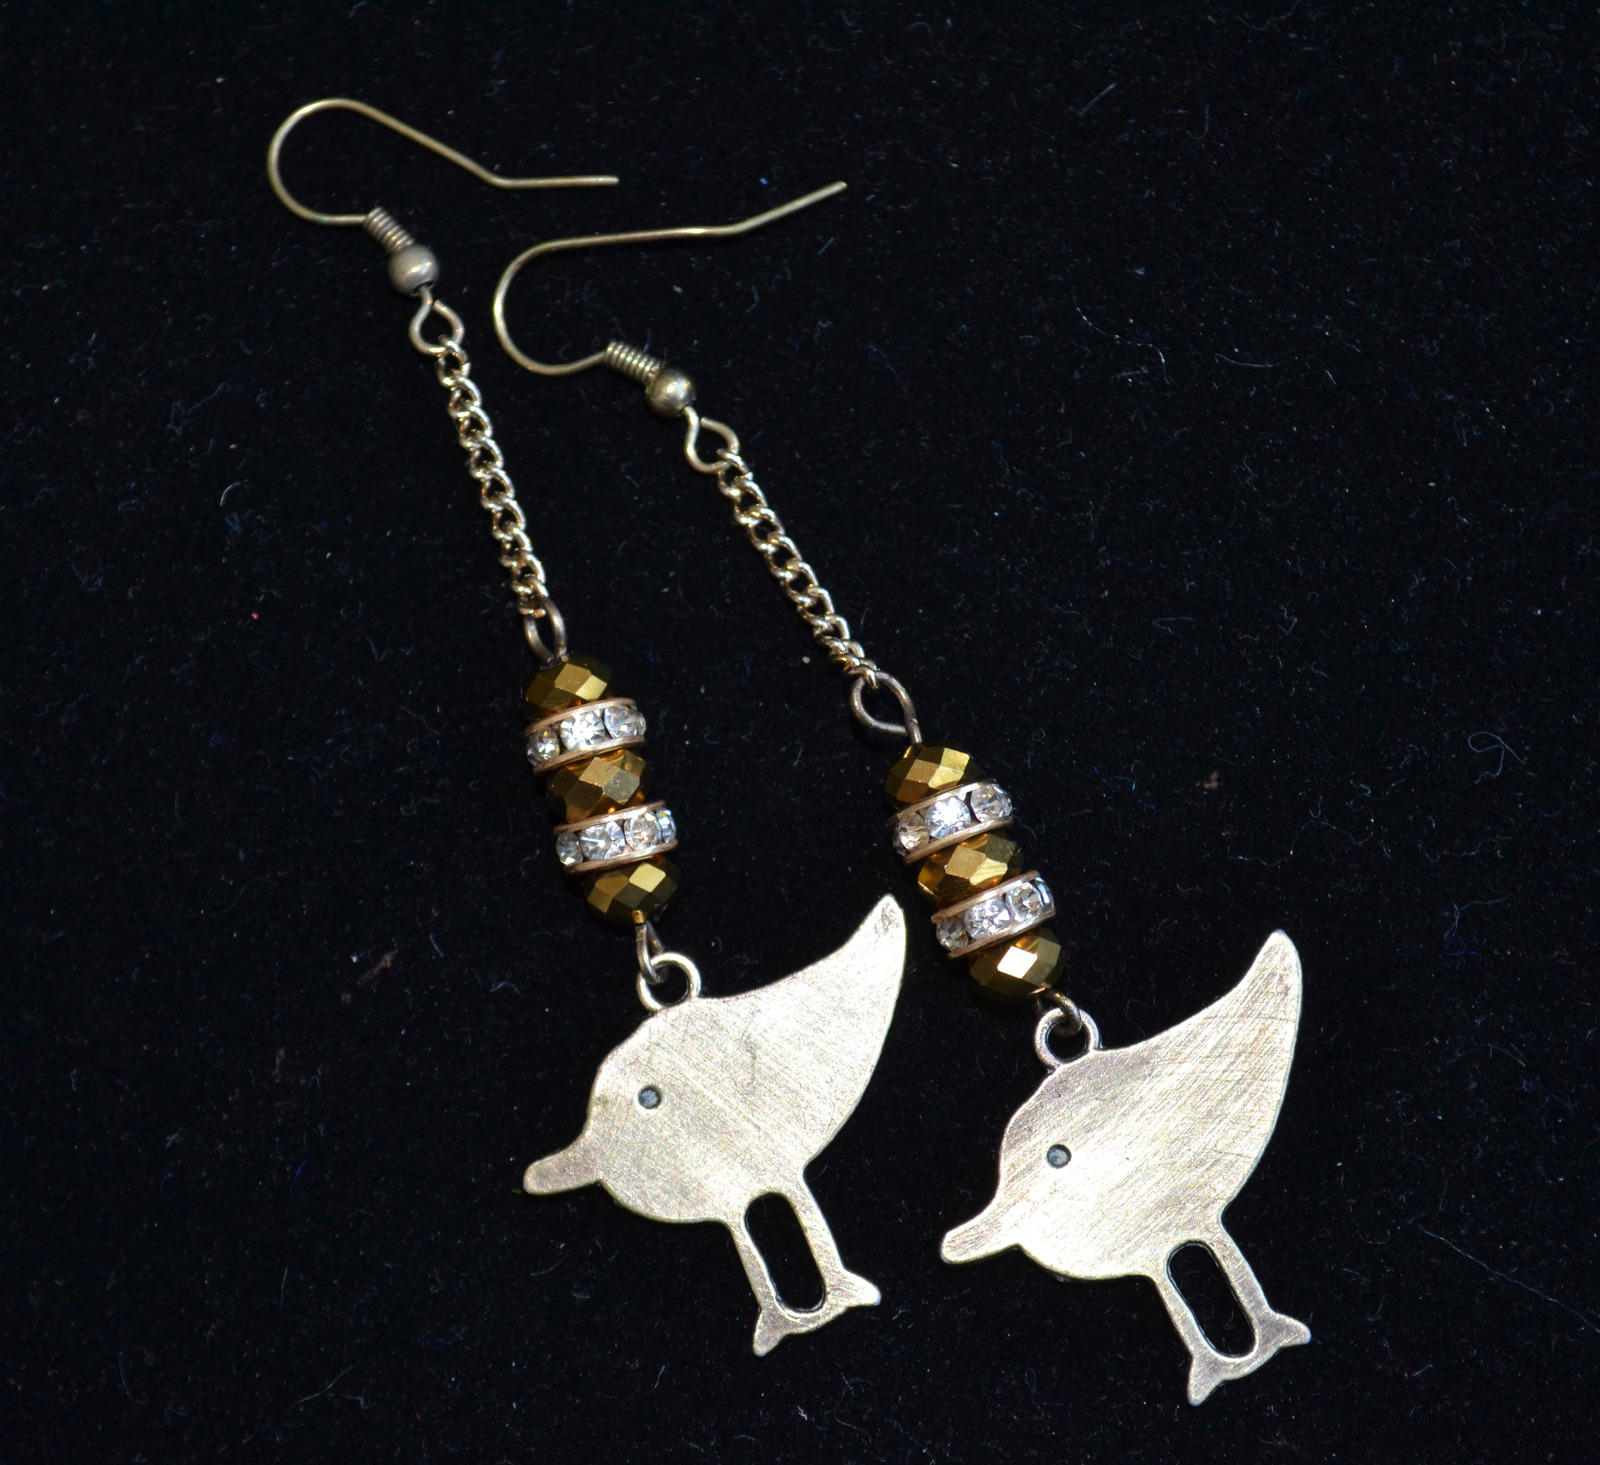 Primary image for Bird earrings, Long designer earrings, bronze Boho earrings (E980)